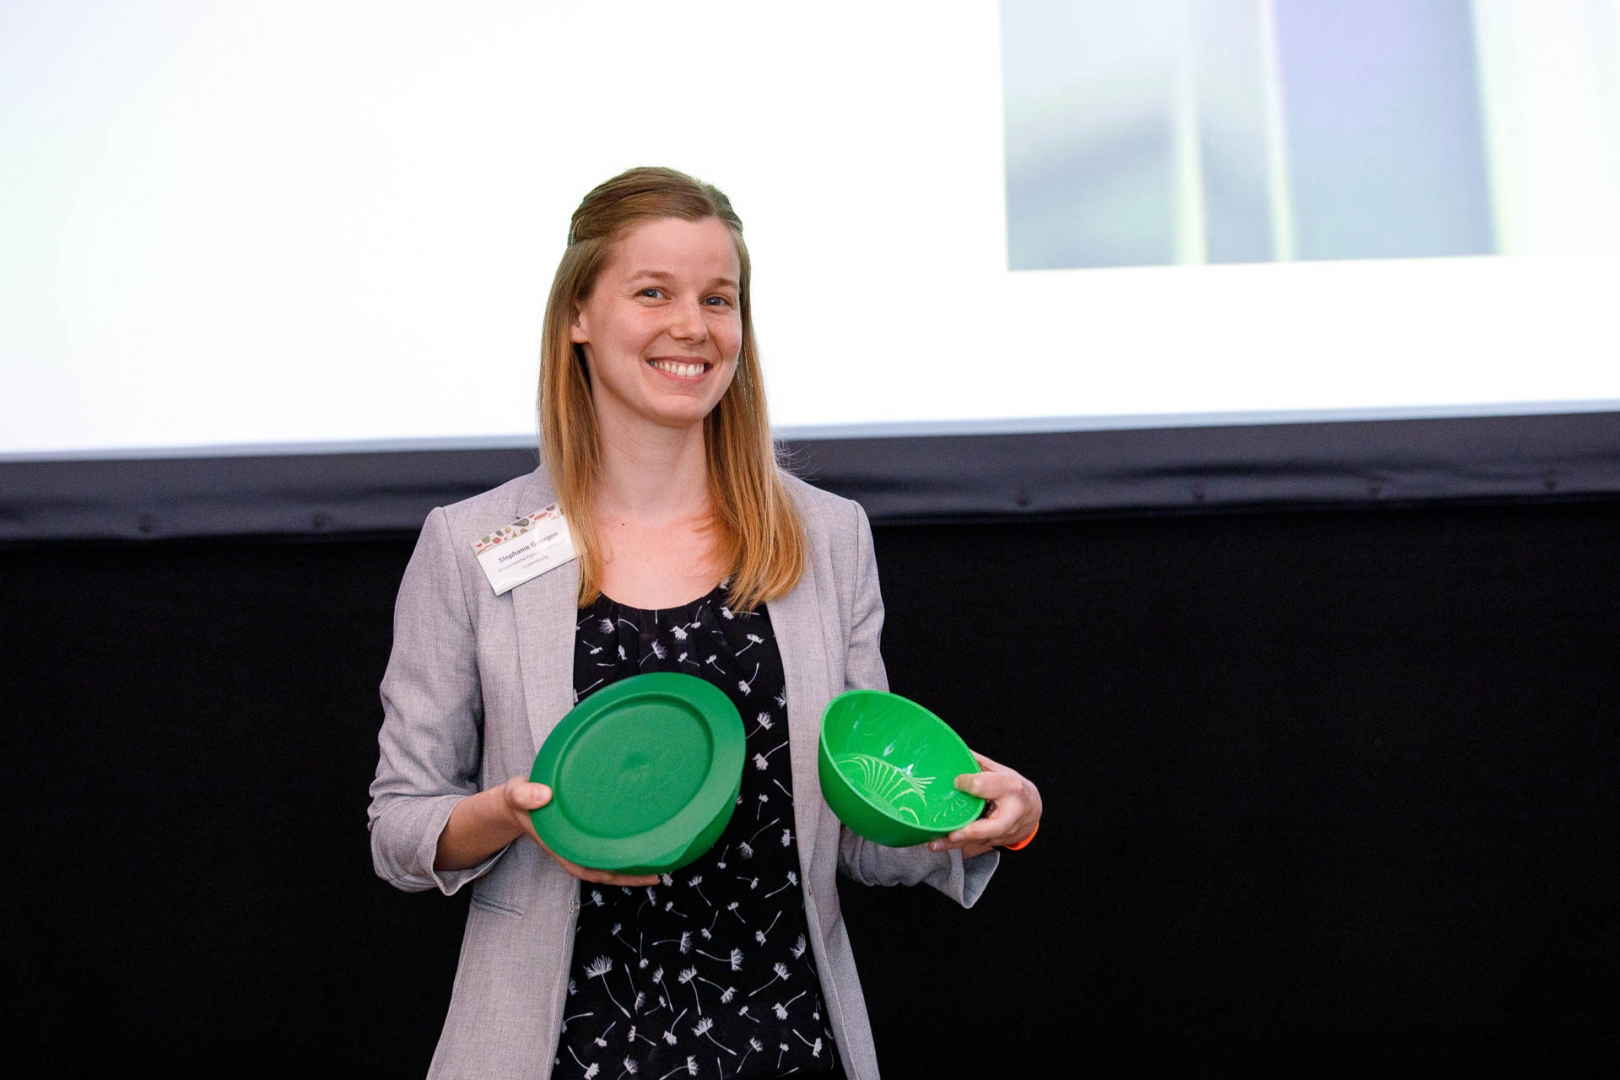 Stephanie Goergen received the first prize for the Ecobox on behalf of the Luxemburgish Government. The Ecobox is a reusable box that is nationally available in many restaurants, canteens and municipalities and that works as a deposit system.